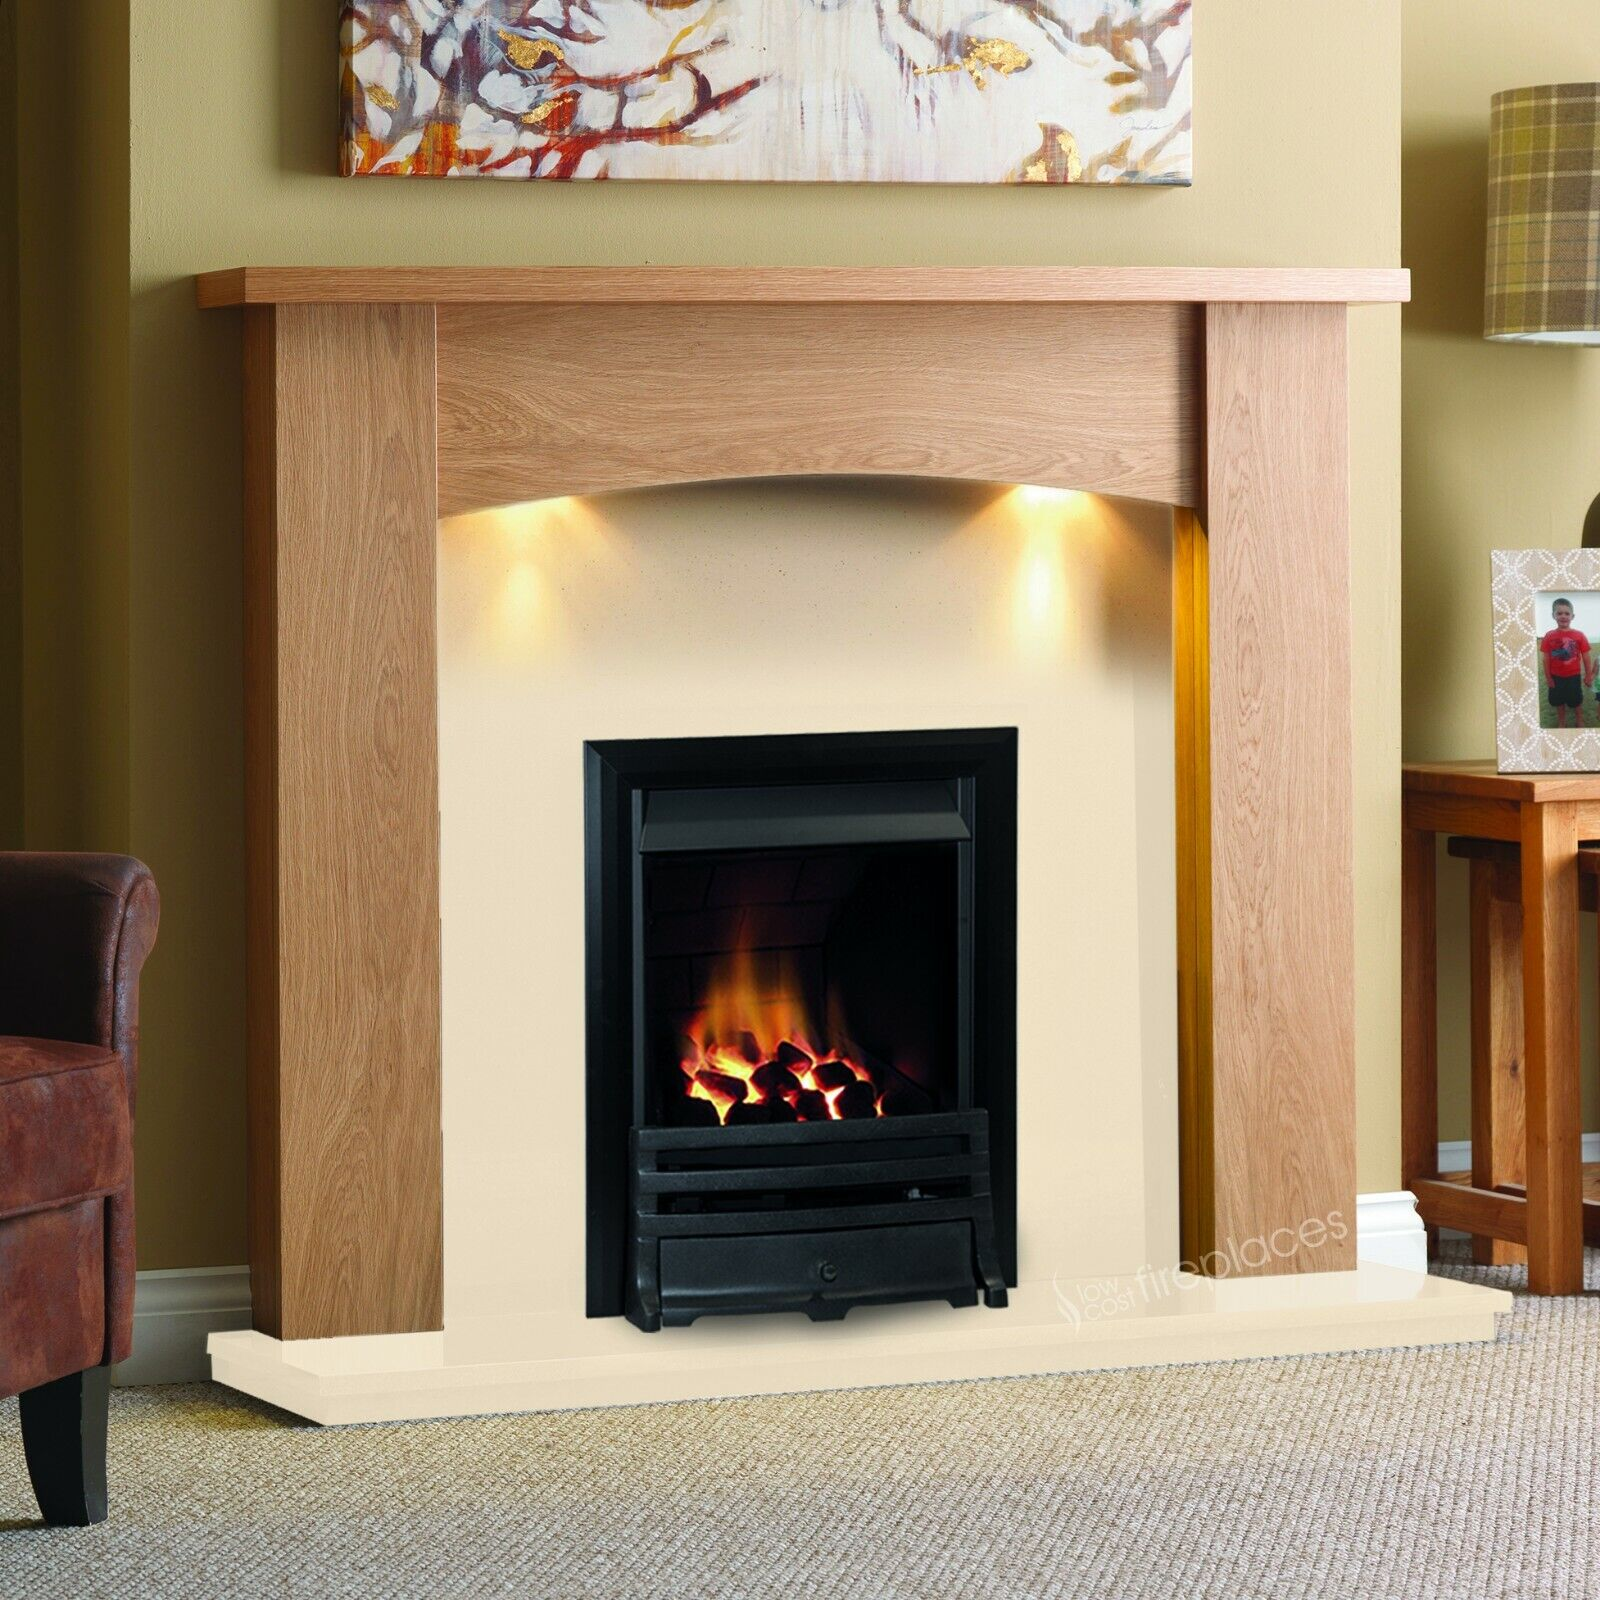 Gas Oak Surround Cream Marble Modern Black Fire Fireplace Suite Lights Large 54 Ebay